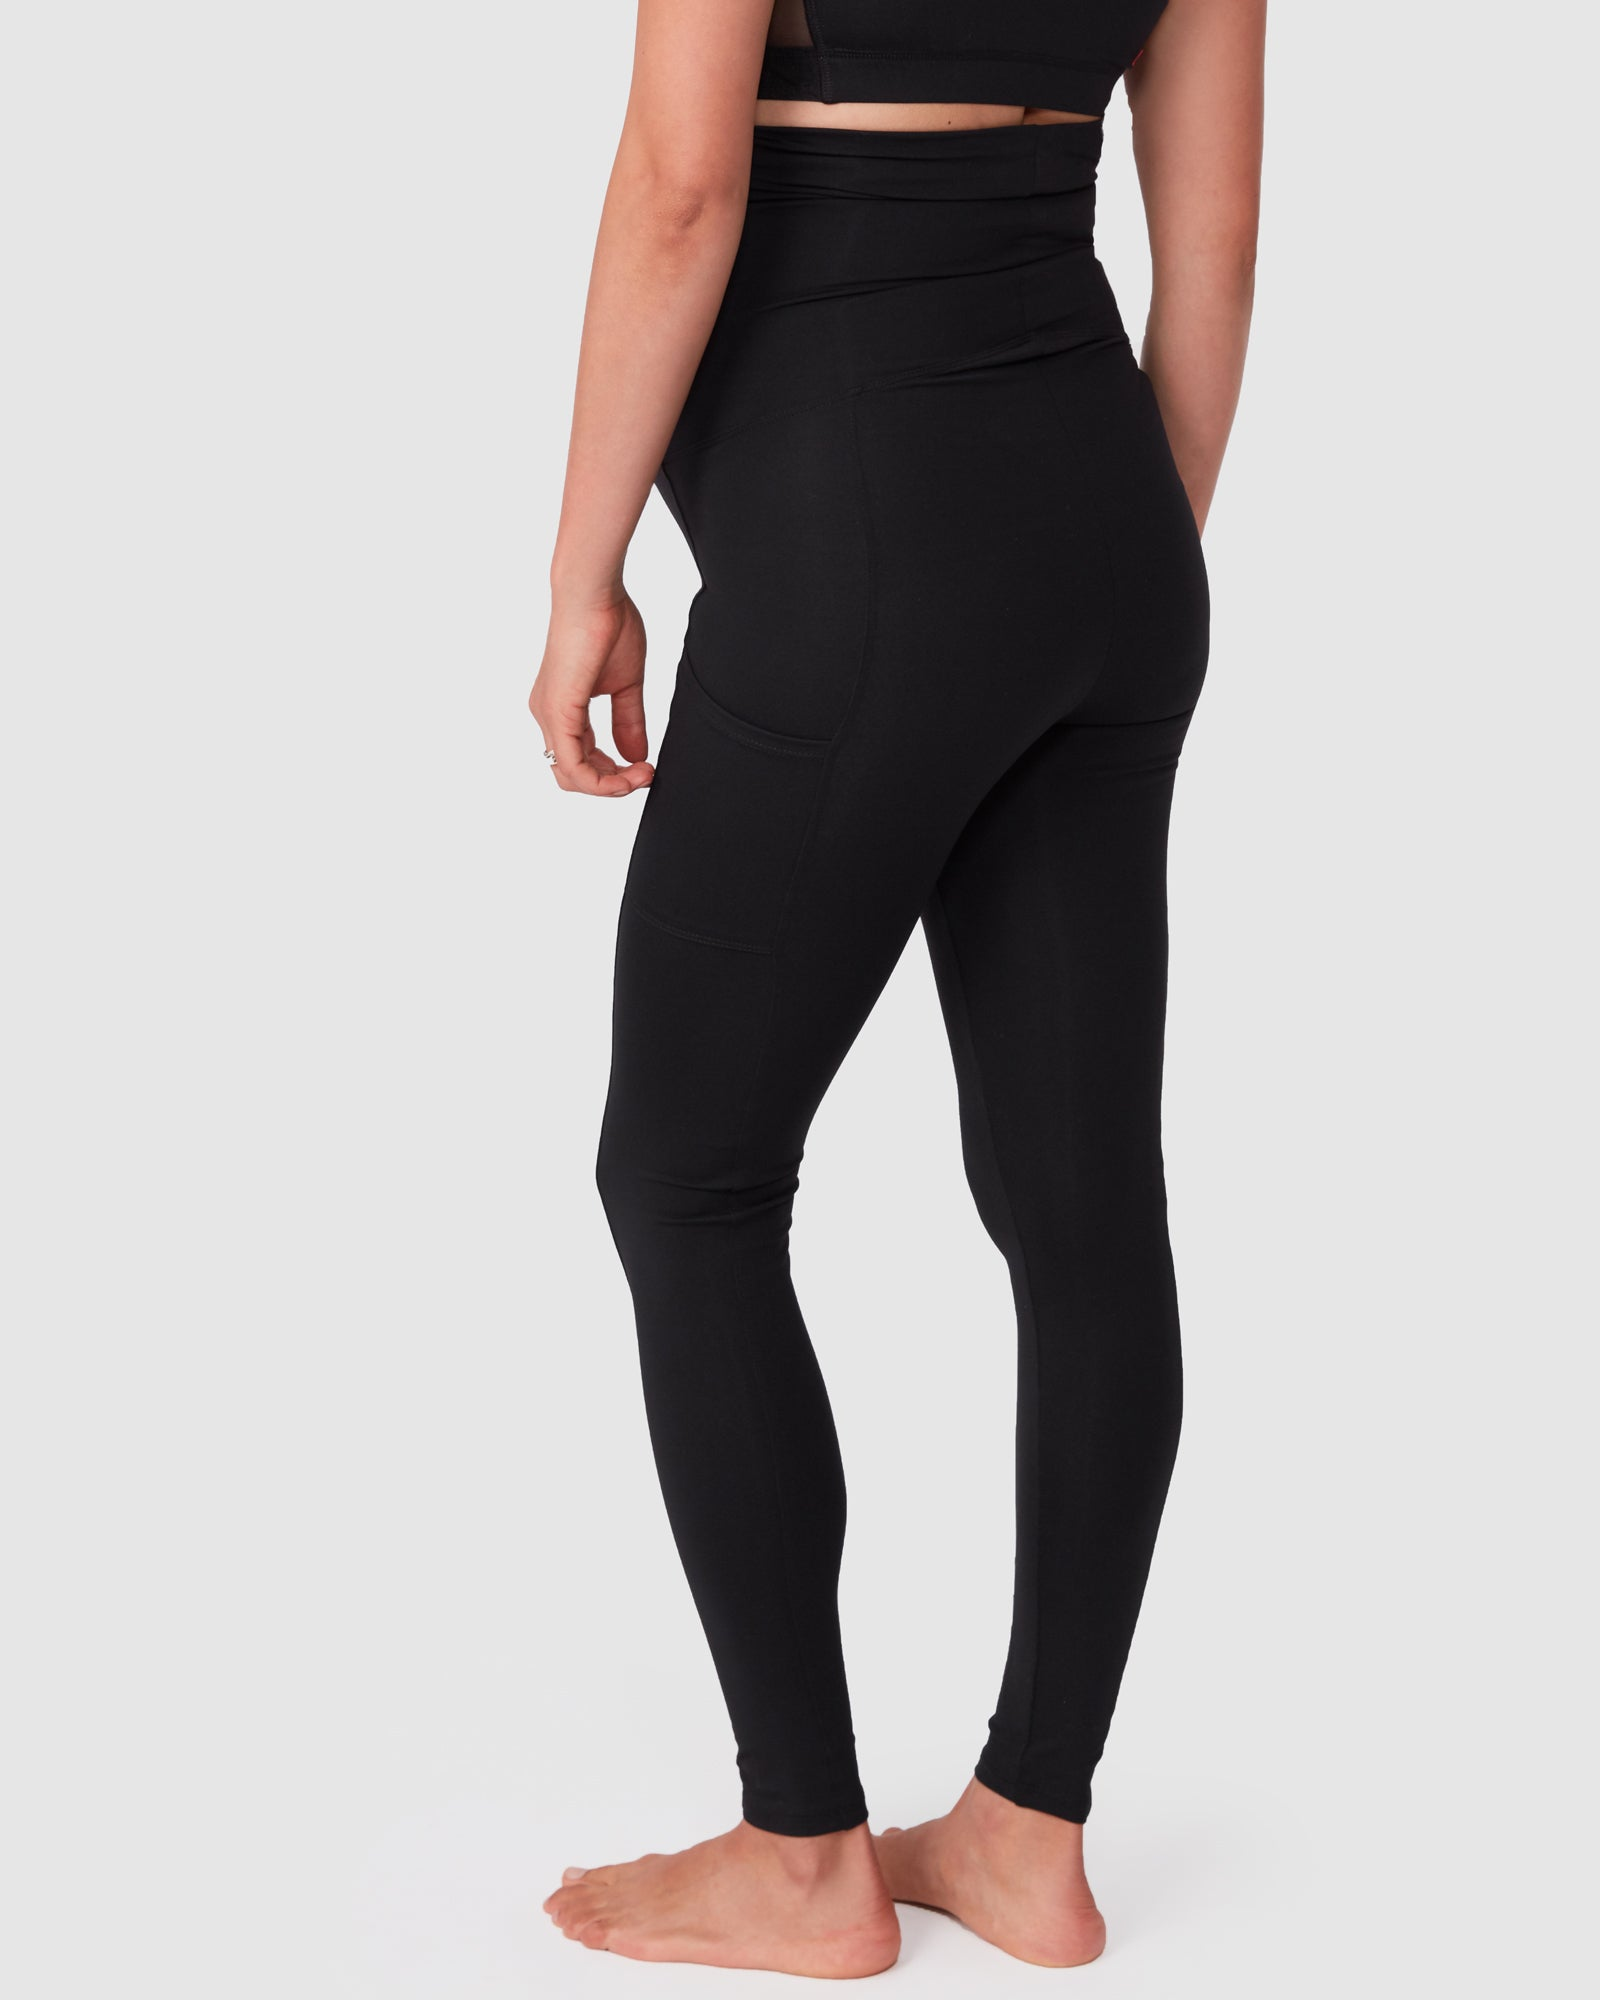 Frida Pocket Recovery Leggings